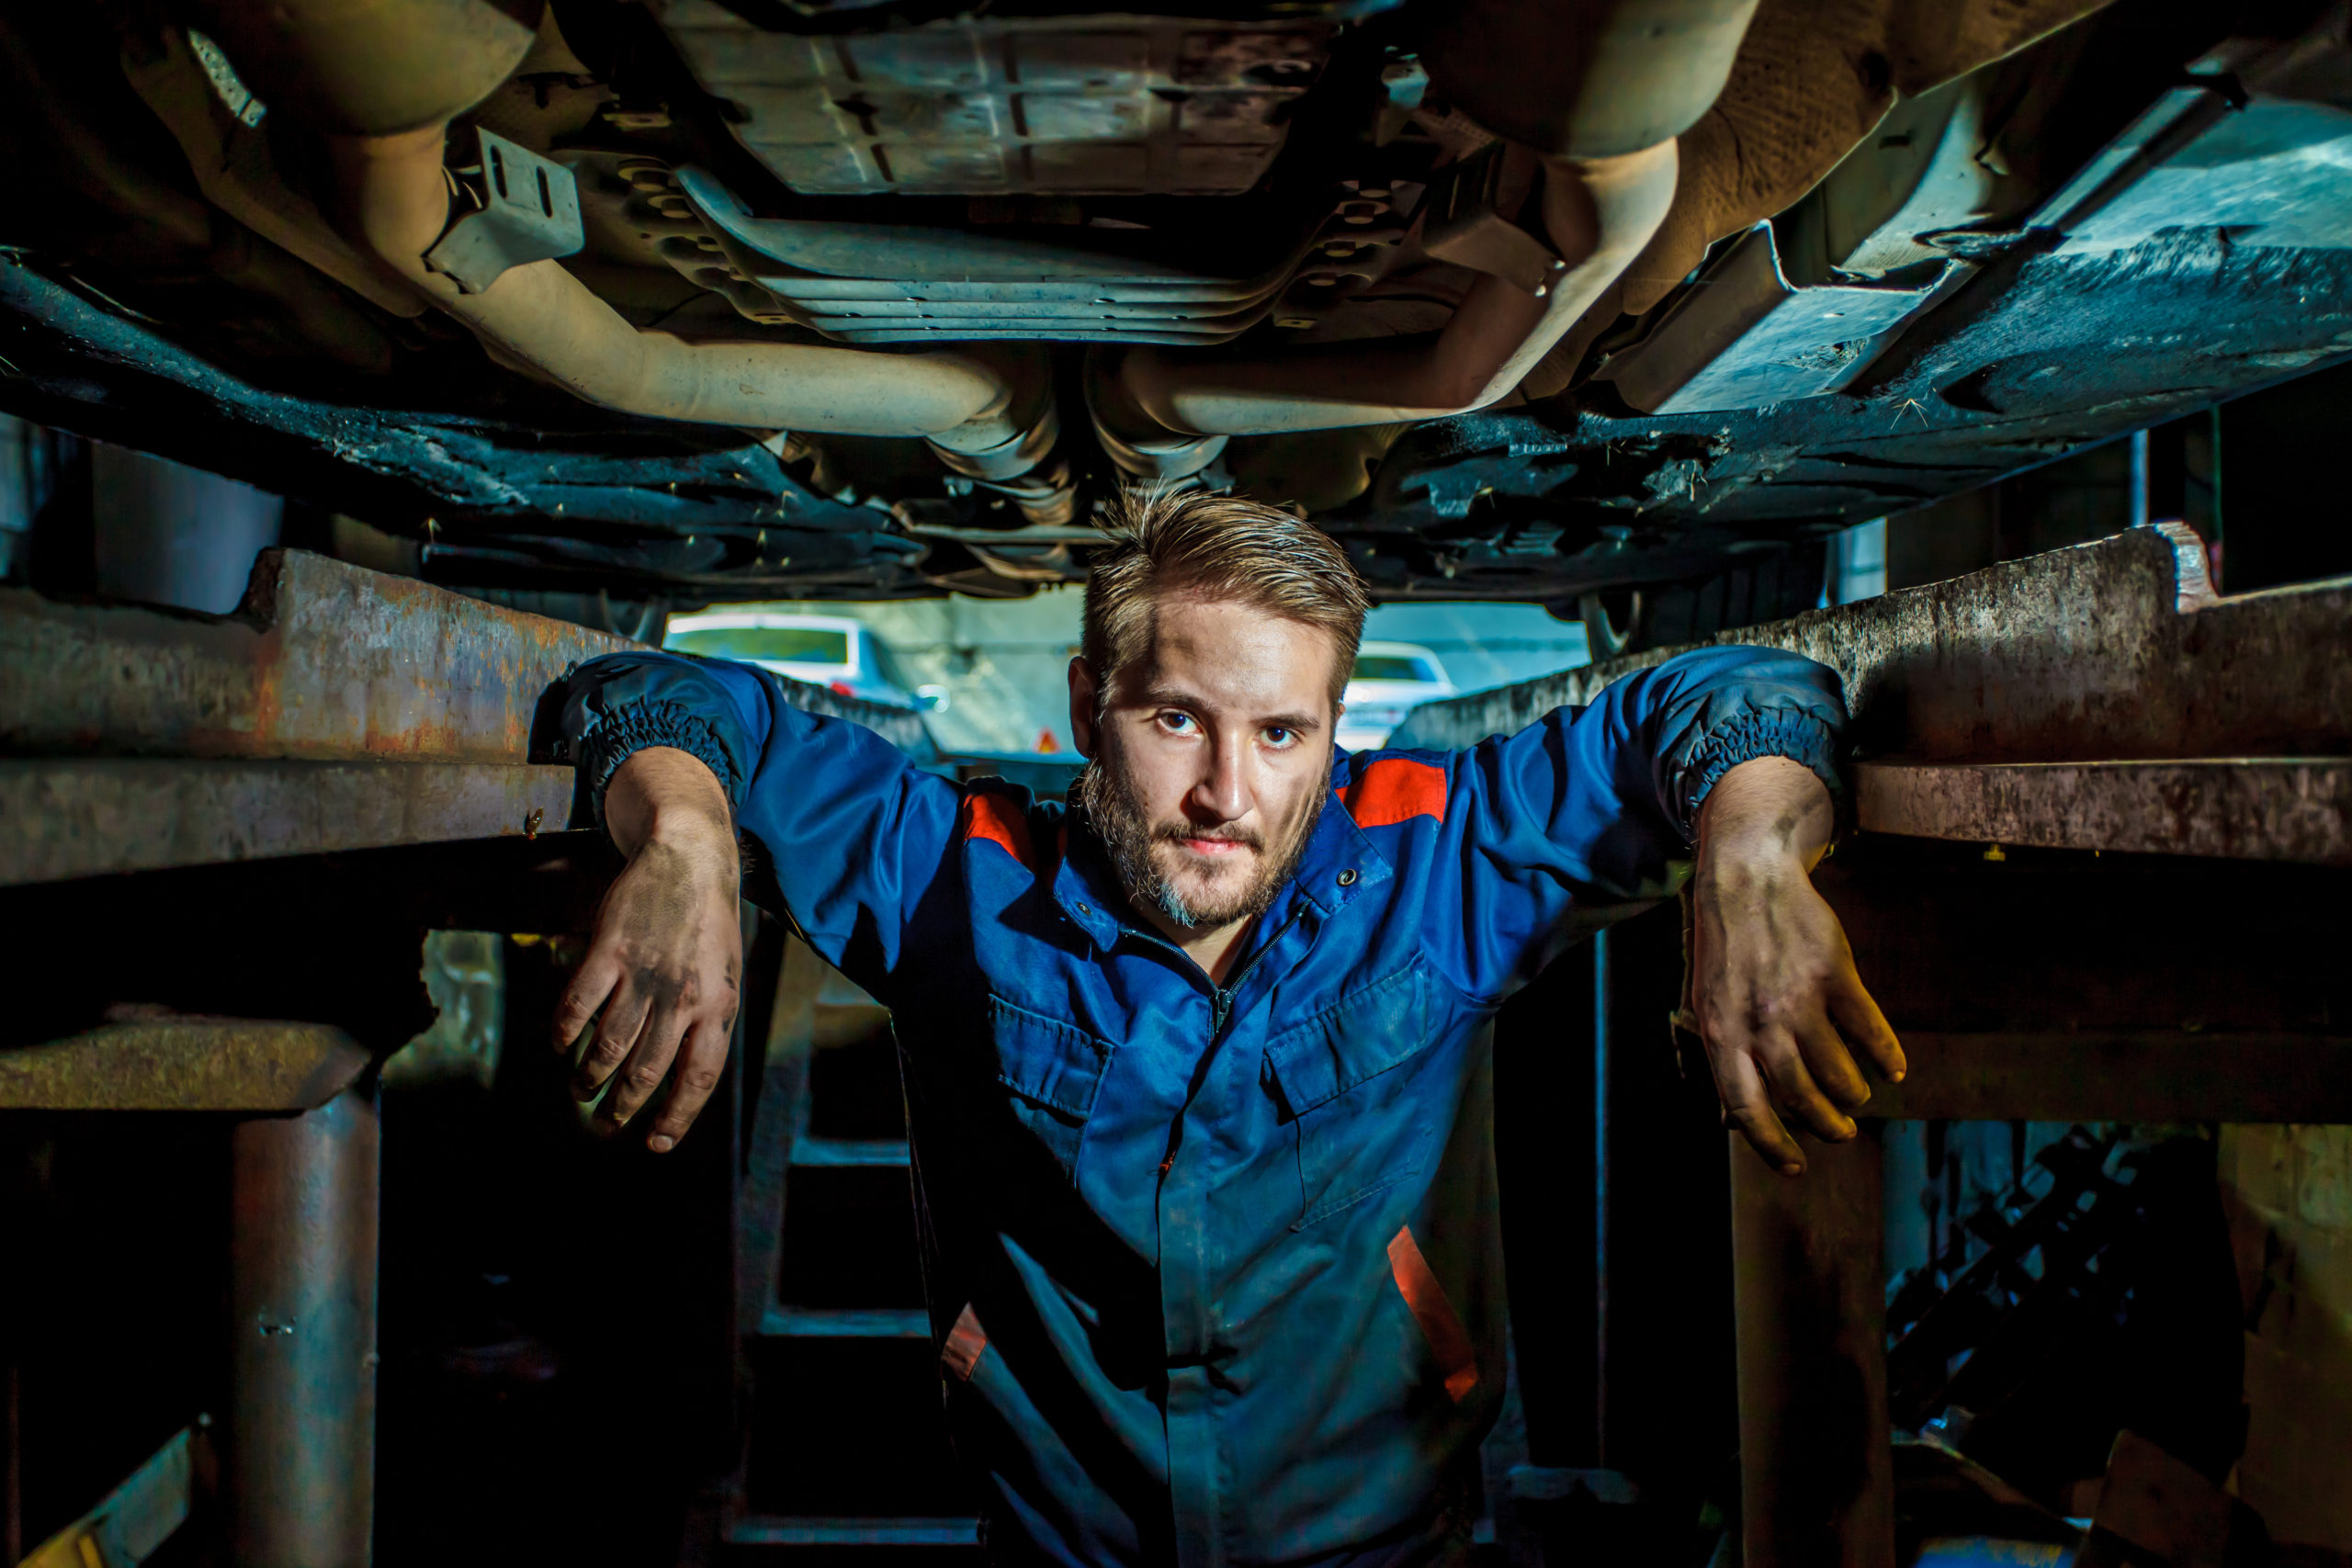 Portrait,Of,A,Mechanic,Standing,In,A,Protective,Blue,Suit